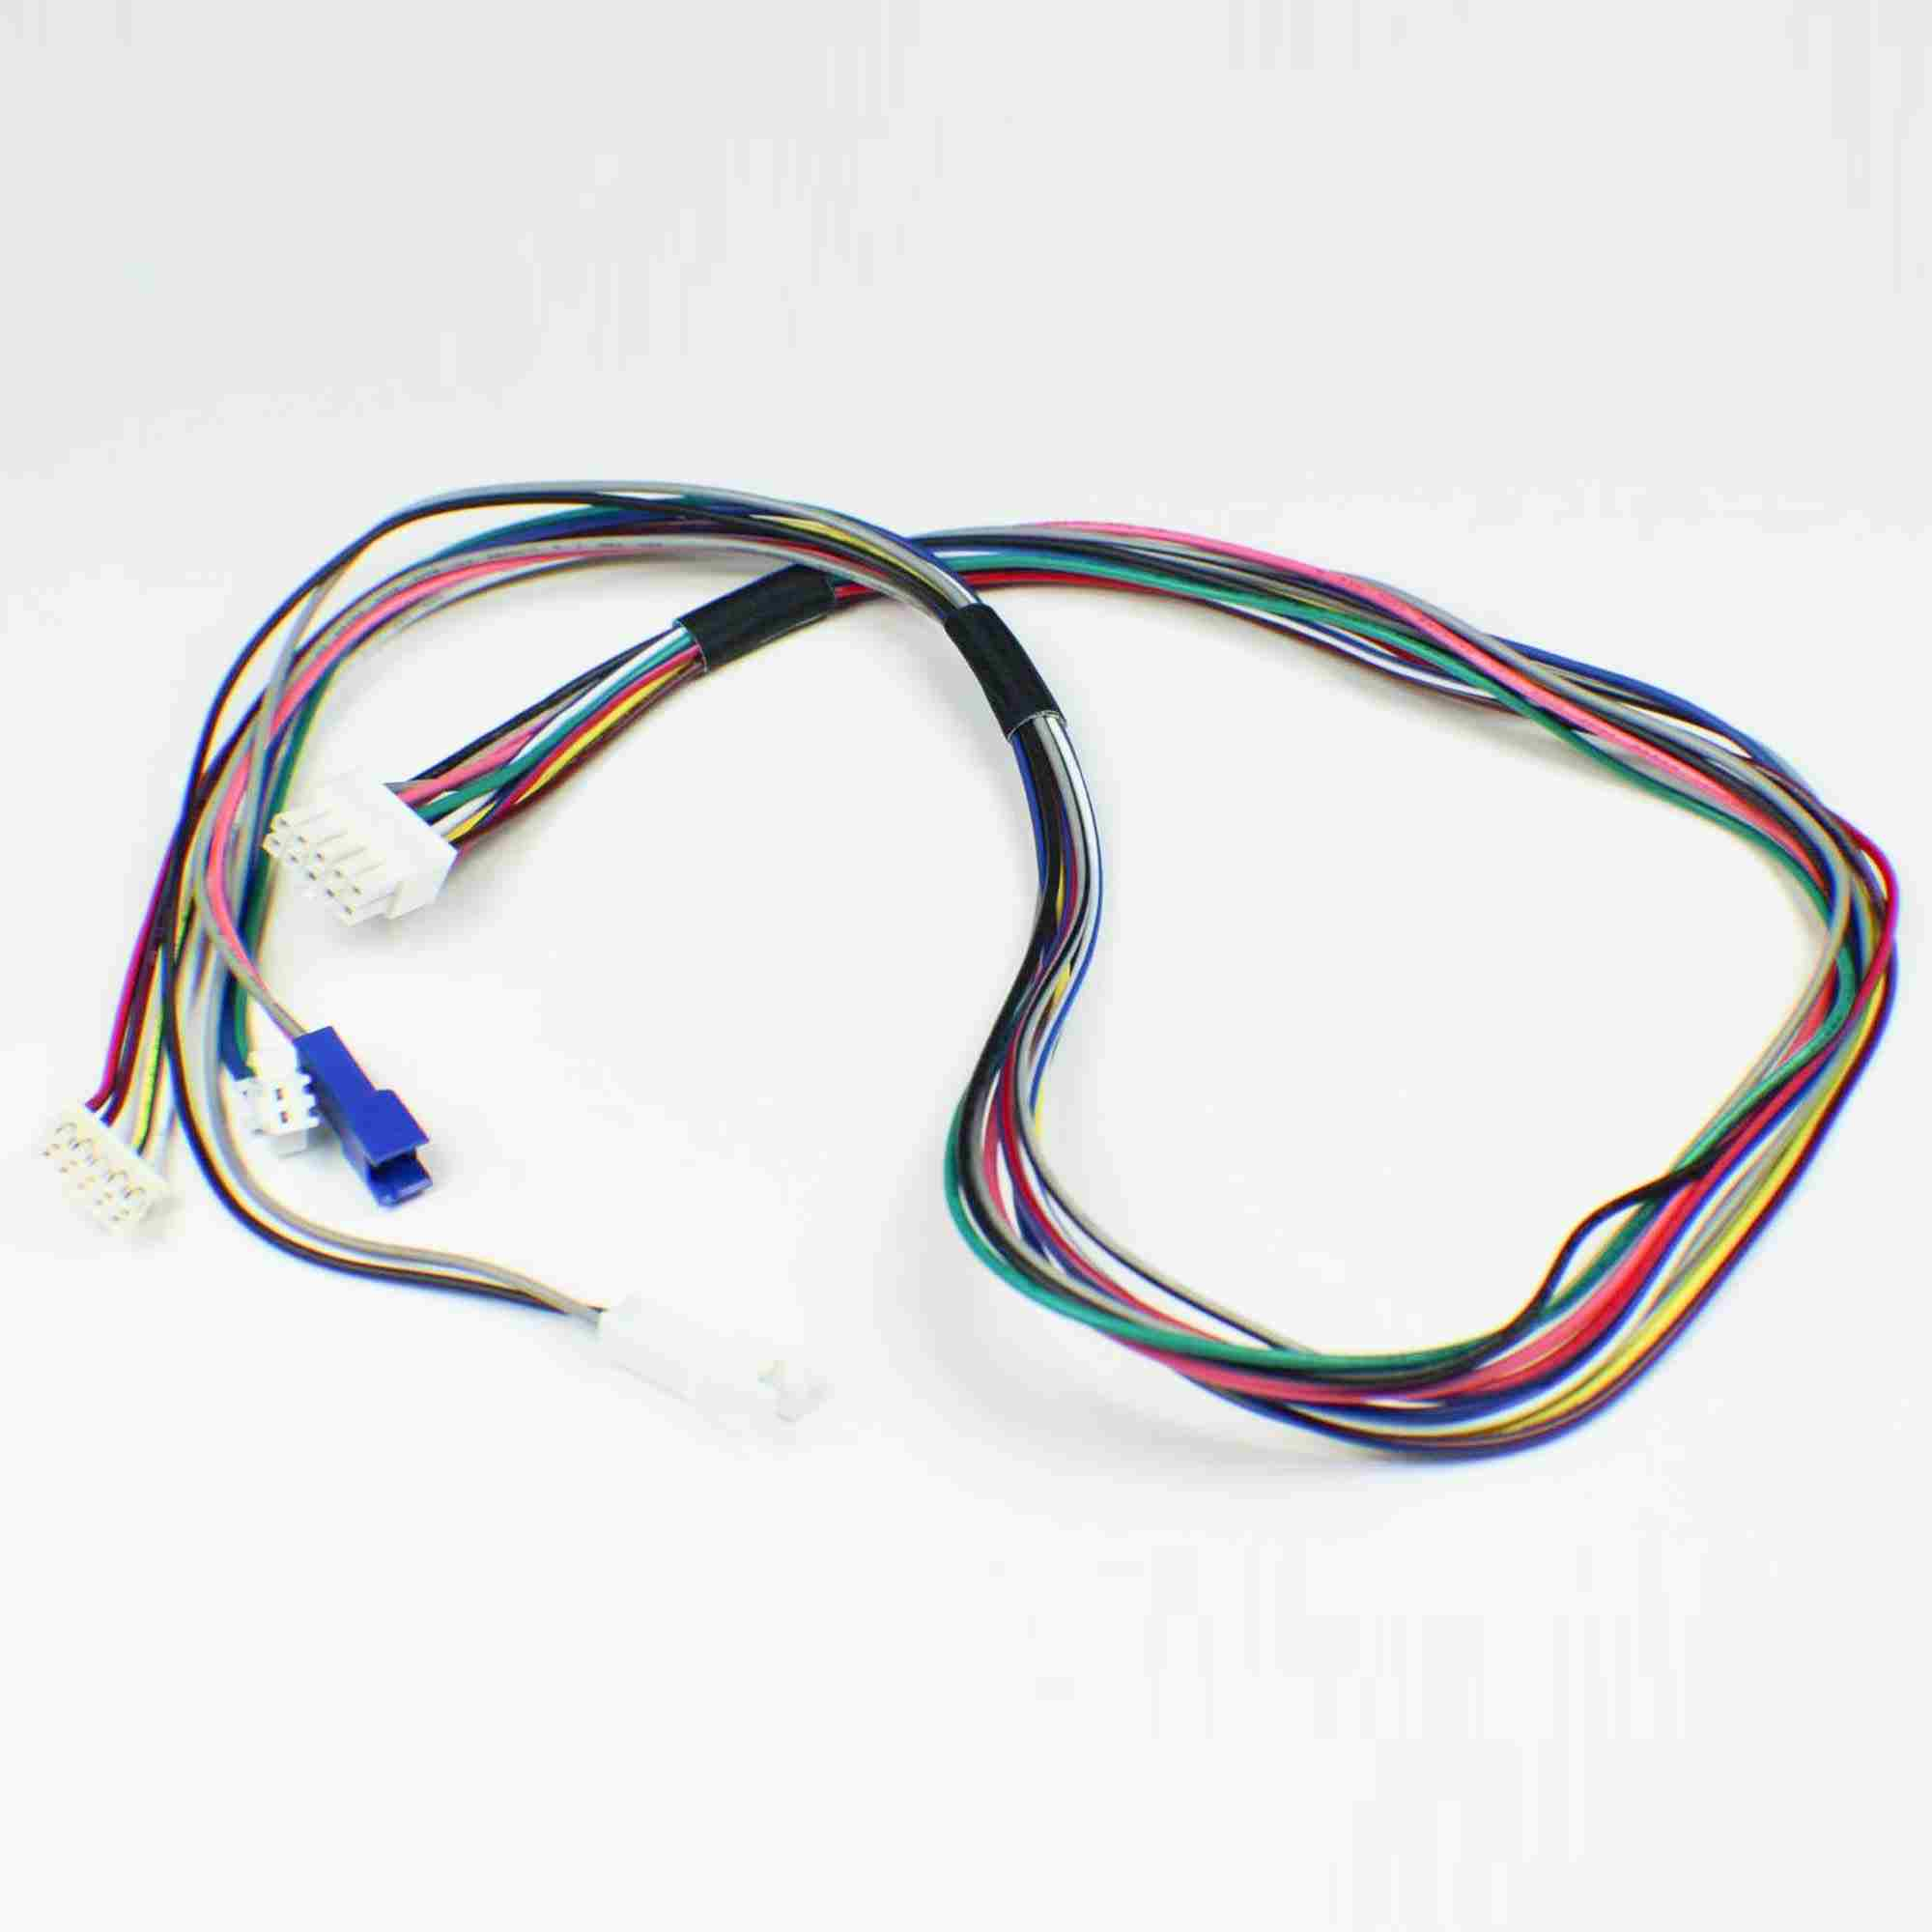 Ice Maker Wiring Harness Adapter Library Boat Tow Walmart 241921501 For Frigidaire Refrigerator Wire Walmartcom